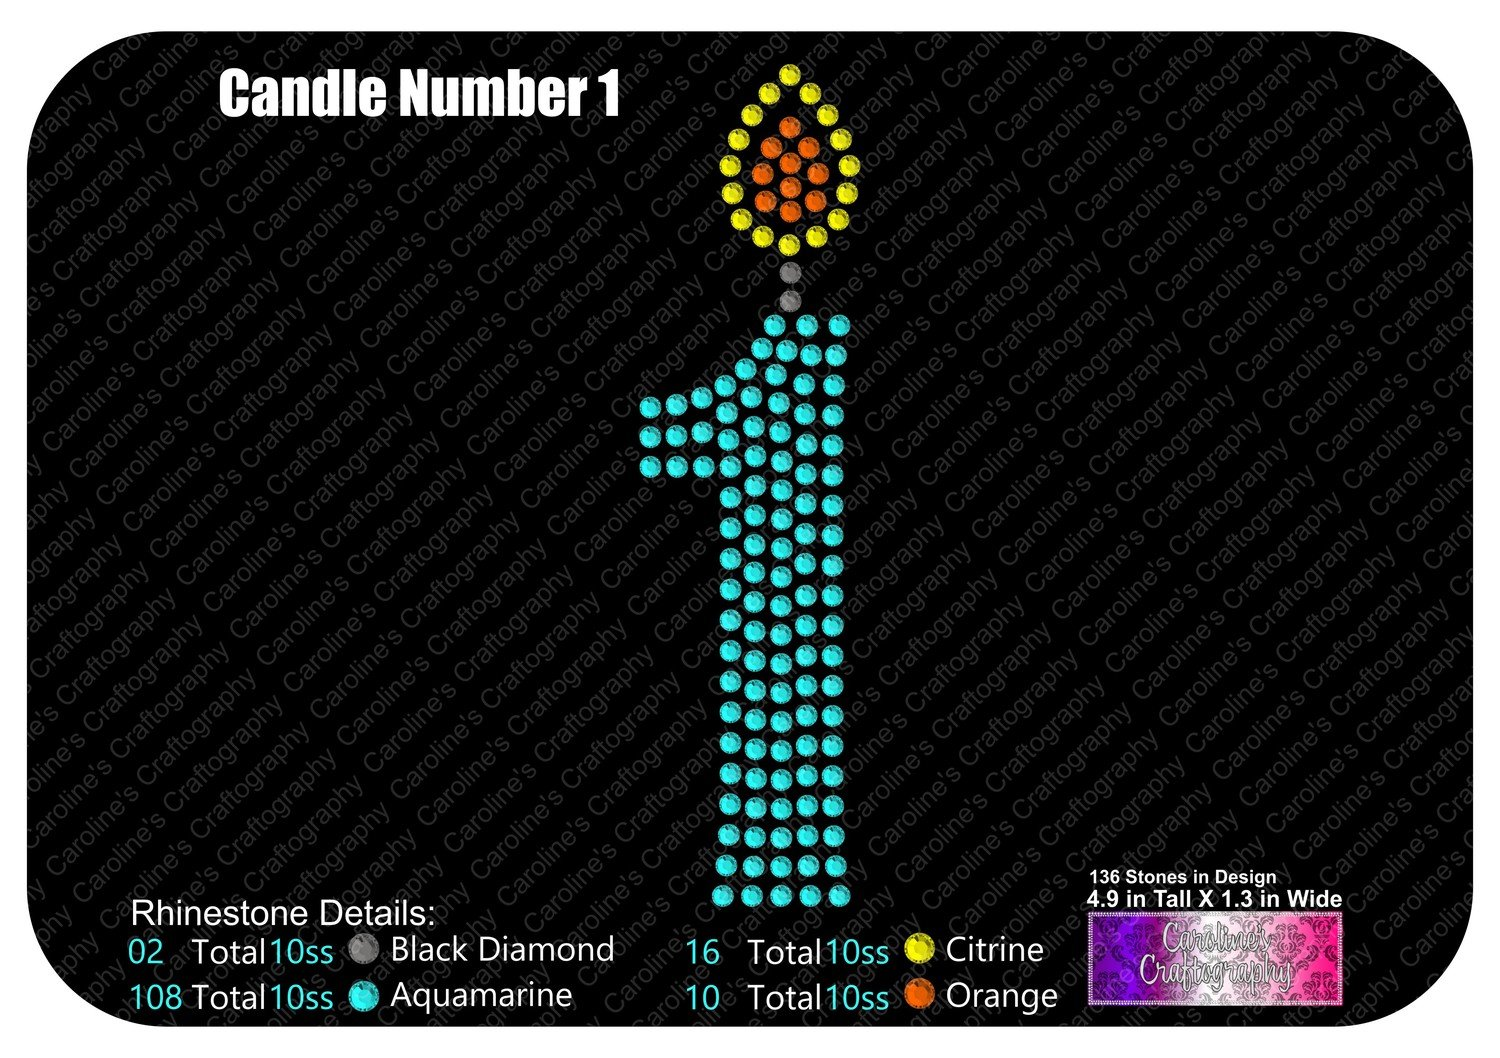 Candle Number 1 Stone